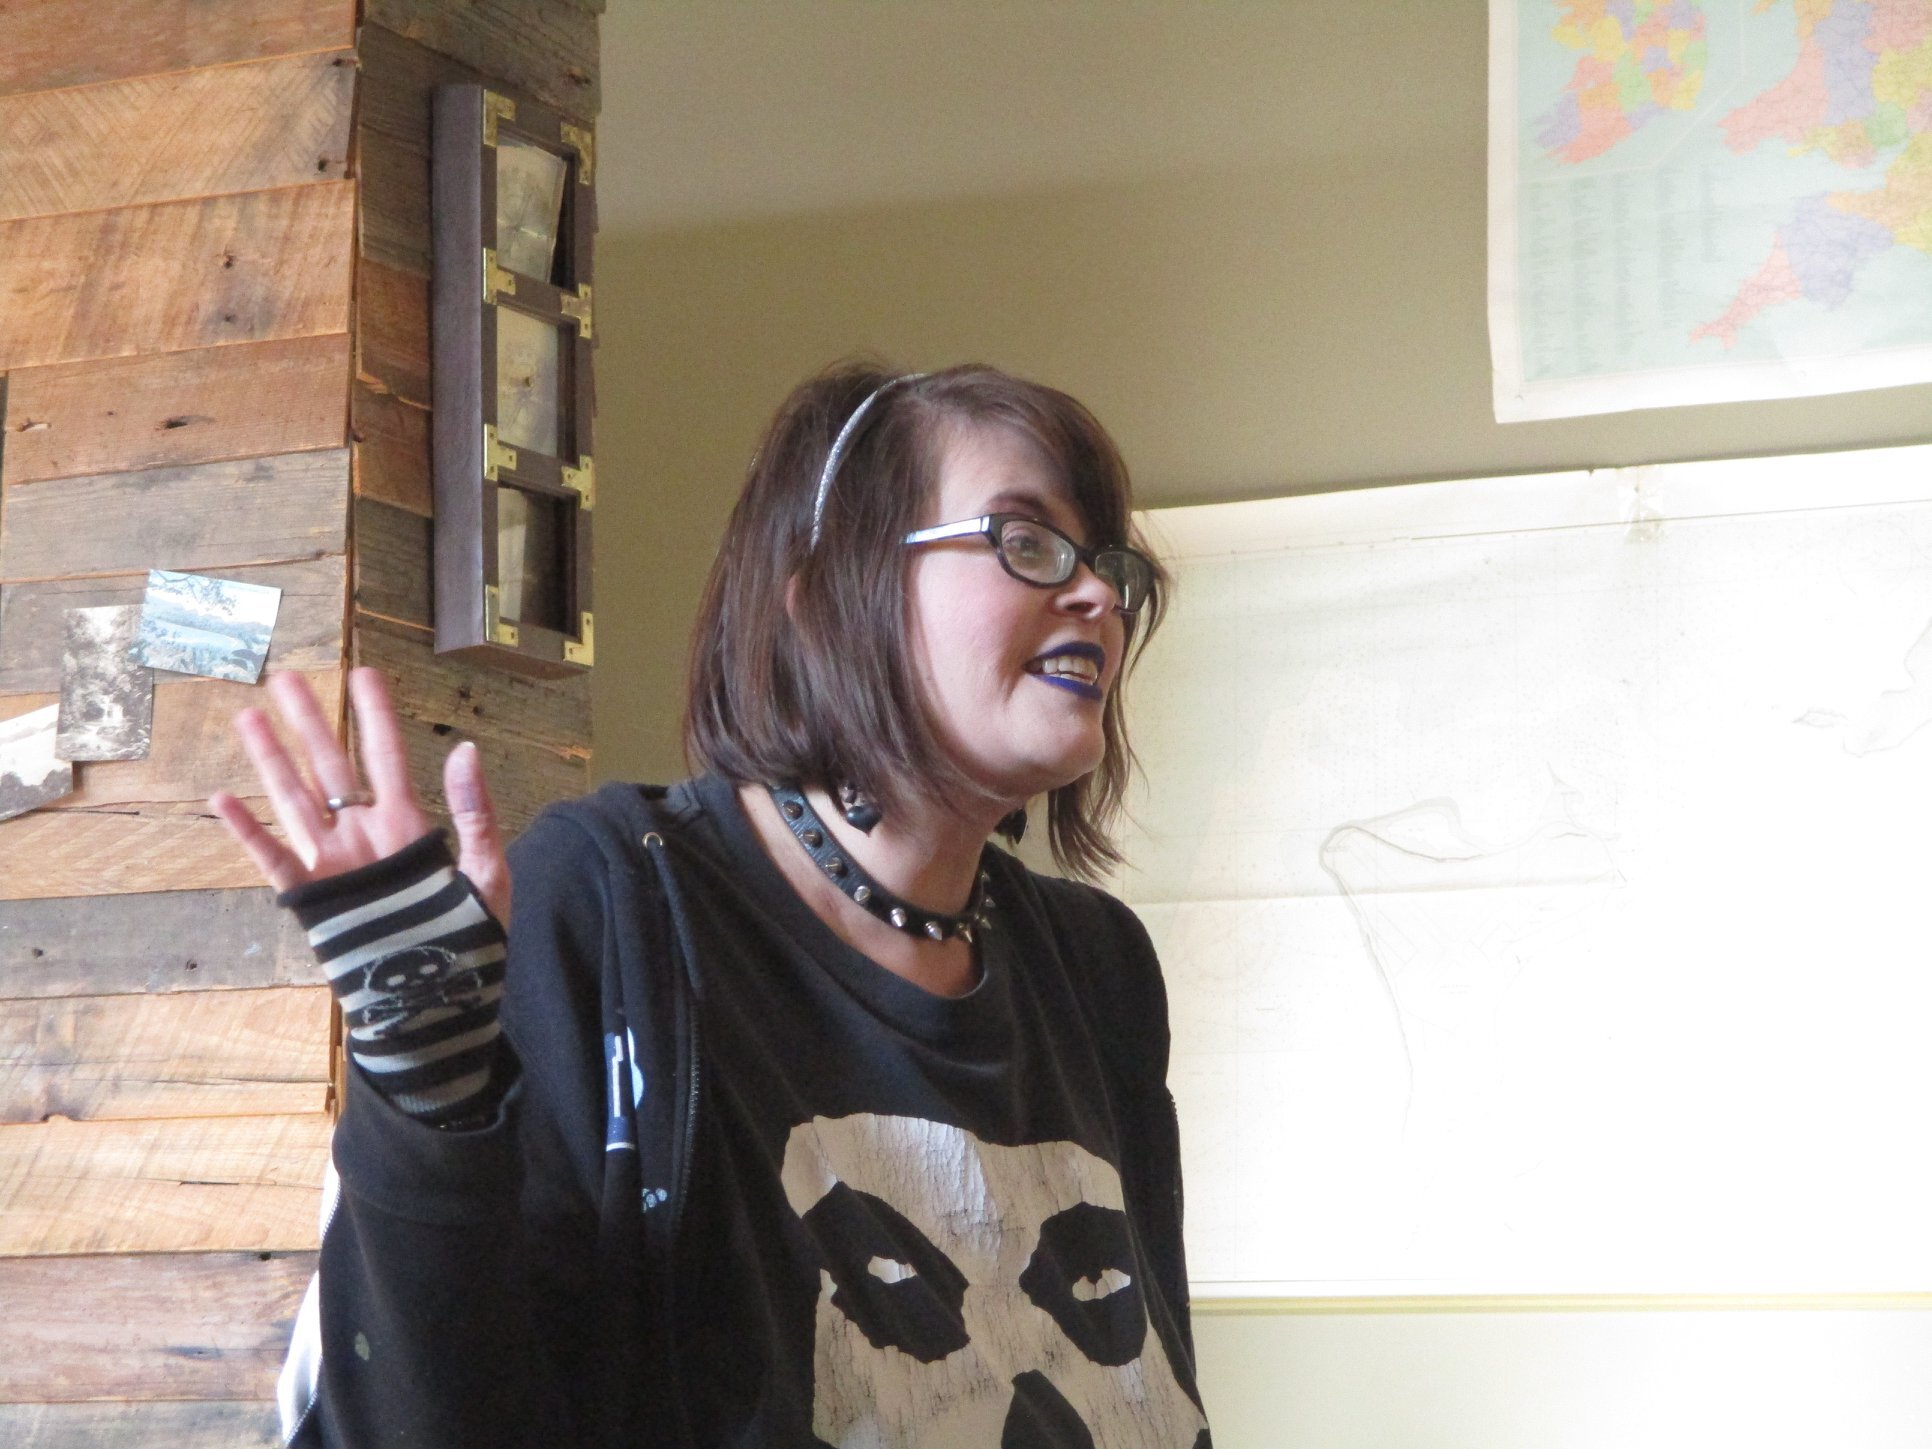 Poet Lori Lasseter Hamilton after a reading in Birmingham, Alabama.